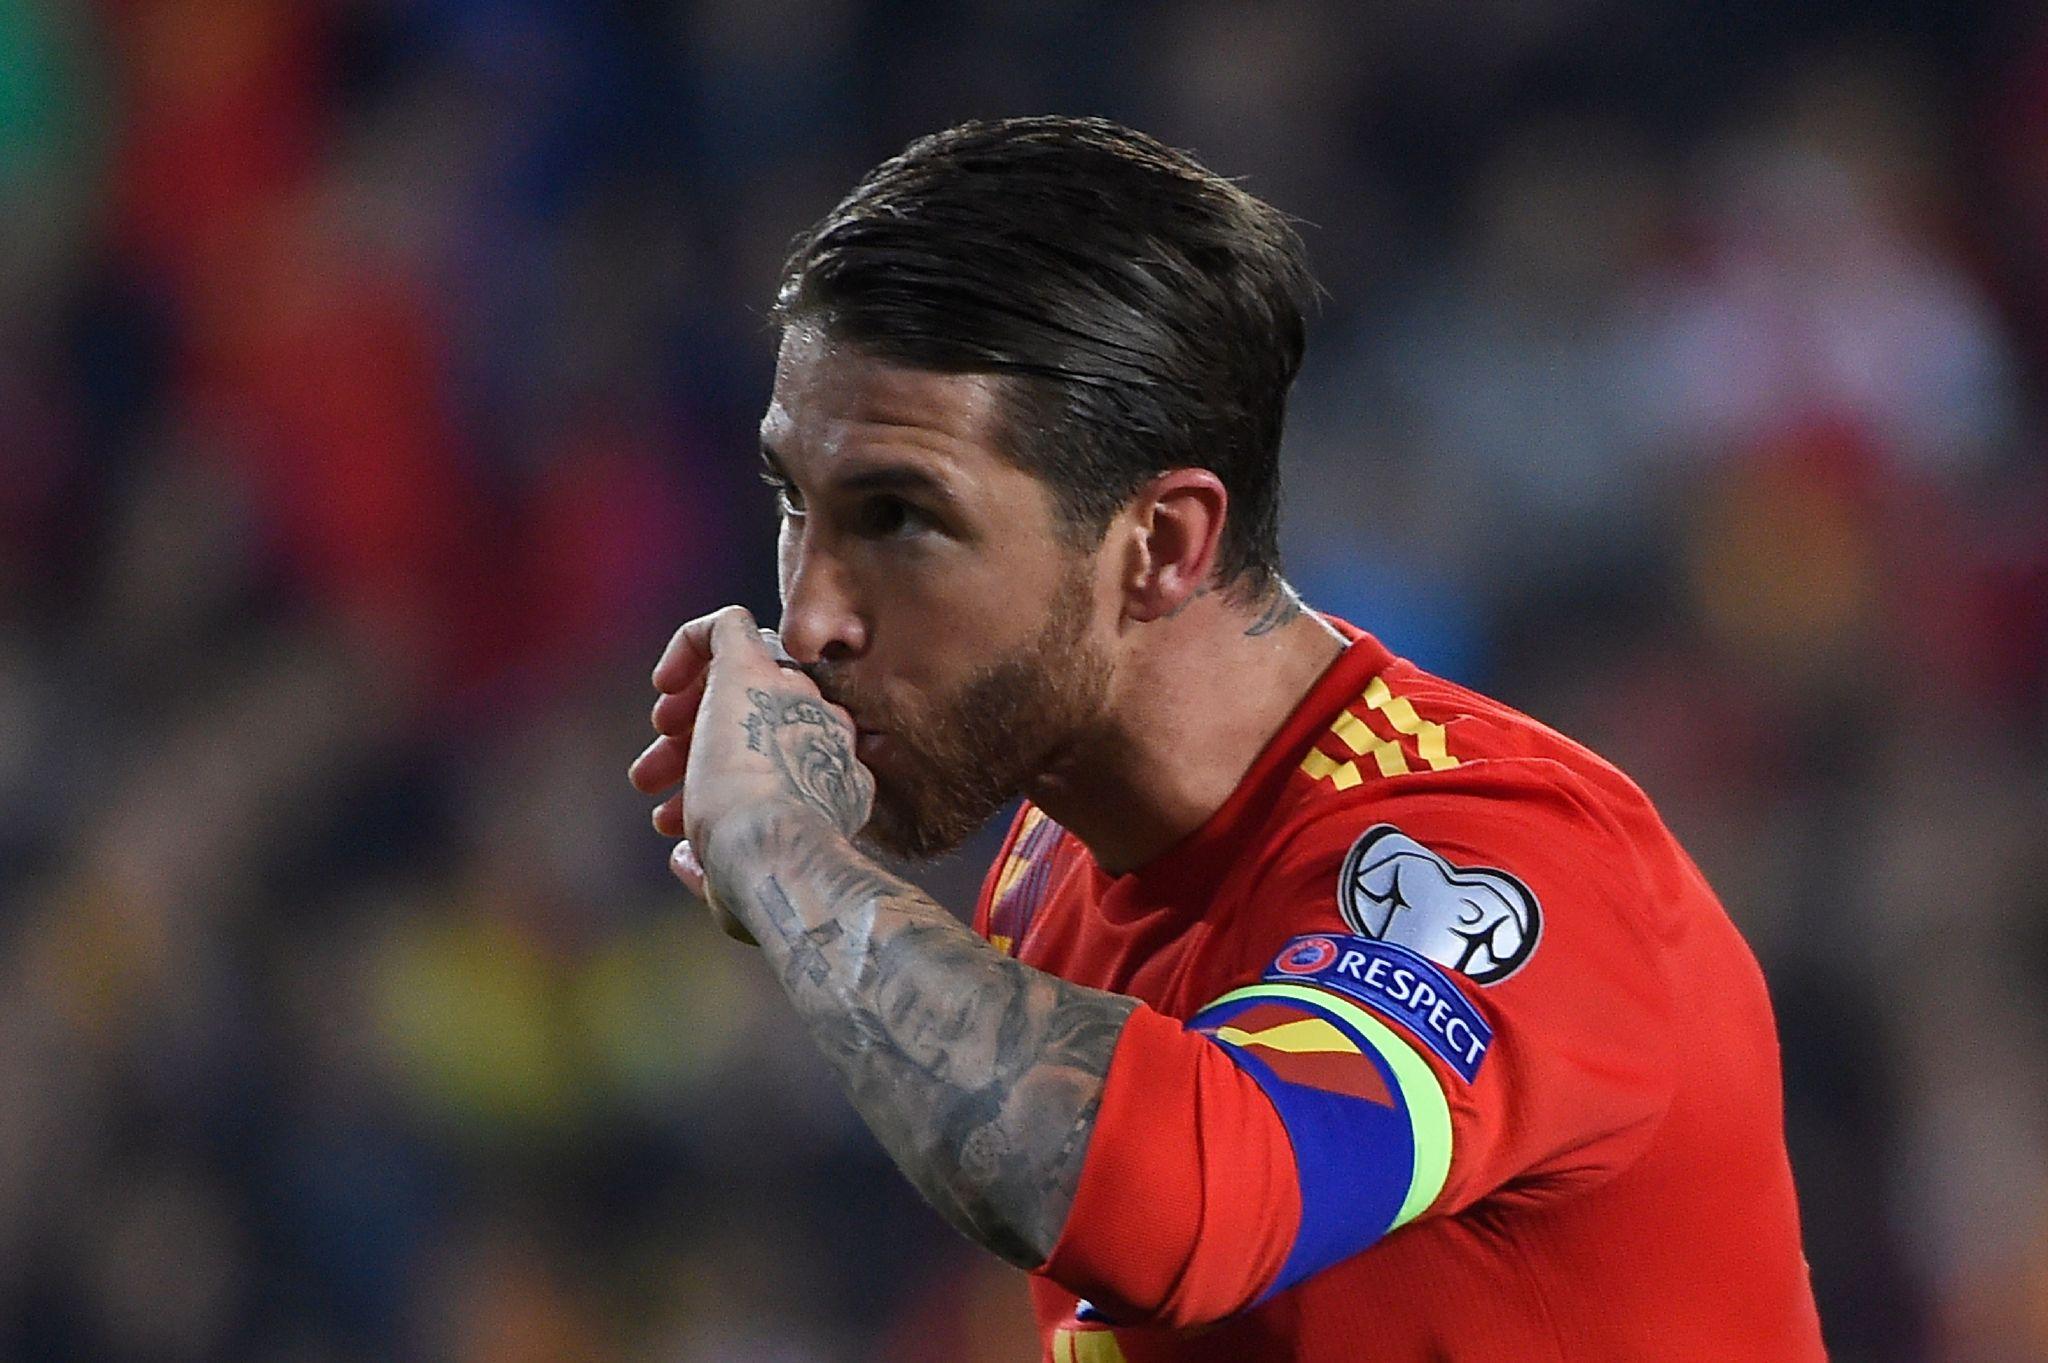 lt;HIT gt;Spain lt;/HIT gt;s defender lt;HIT gt;Sergio lt;/HIT gt; lt;HIT gt;Ramos lt;/HIT gt; celebrates after scoring a goal during the Euro 2020 group F qualifying football match between lt;HIT gt;Spain lt;/HIT gt; and Norway at the Mestalla Stadium in Valencia on March 23, 2019. (Photo by JOSE JORDAN / AFP)